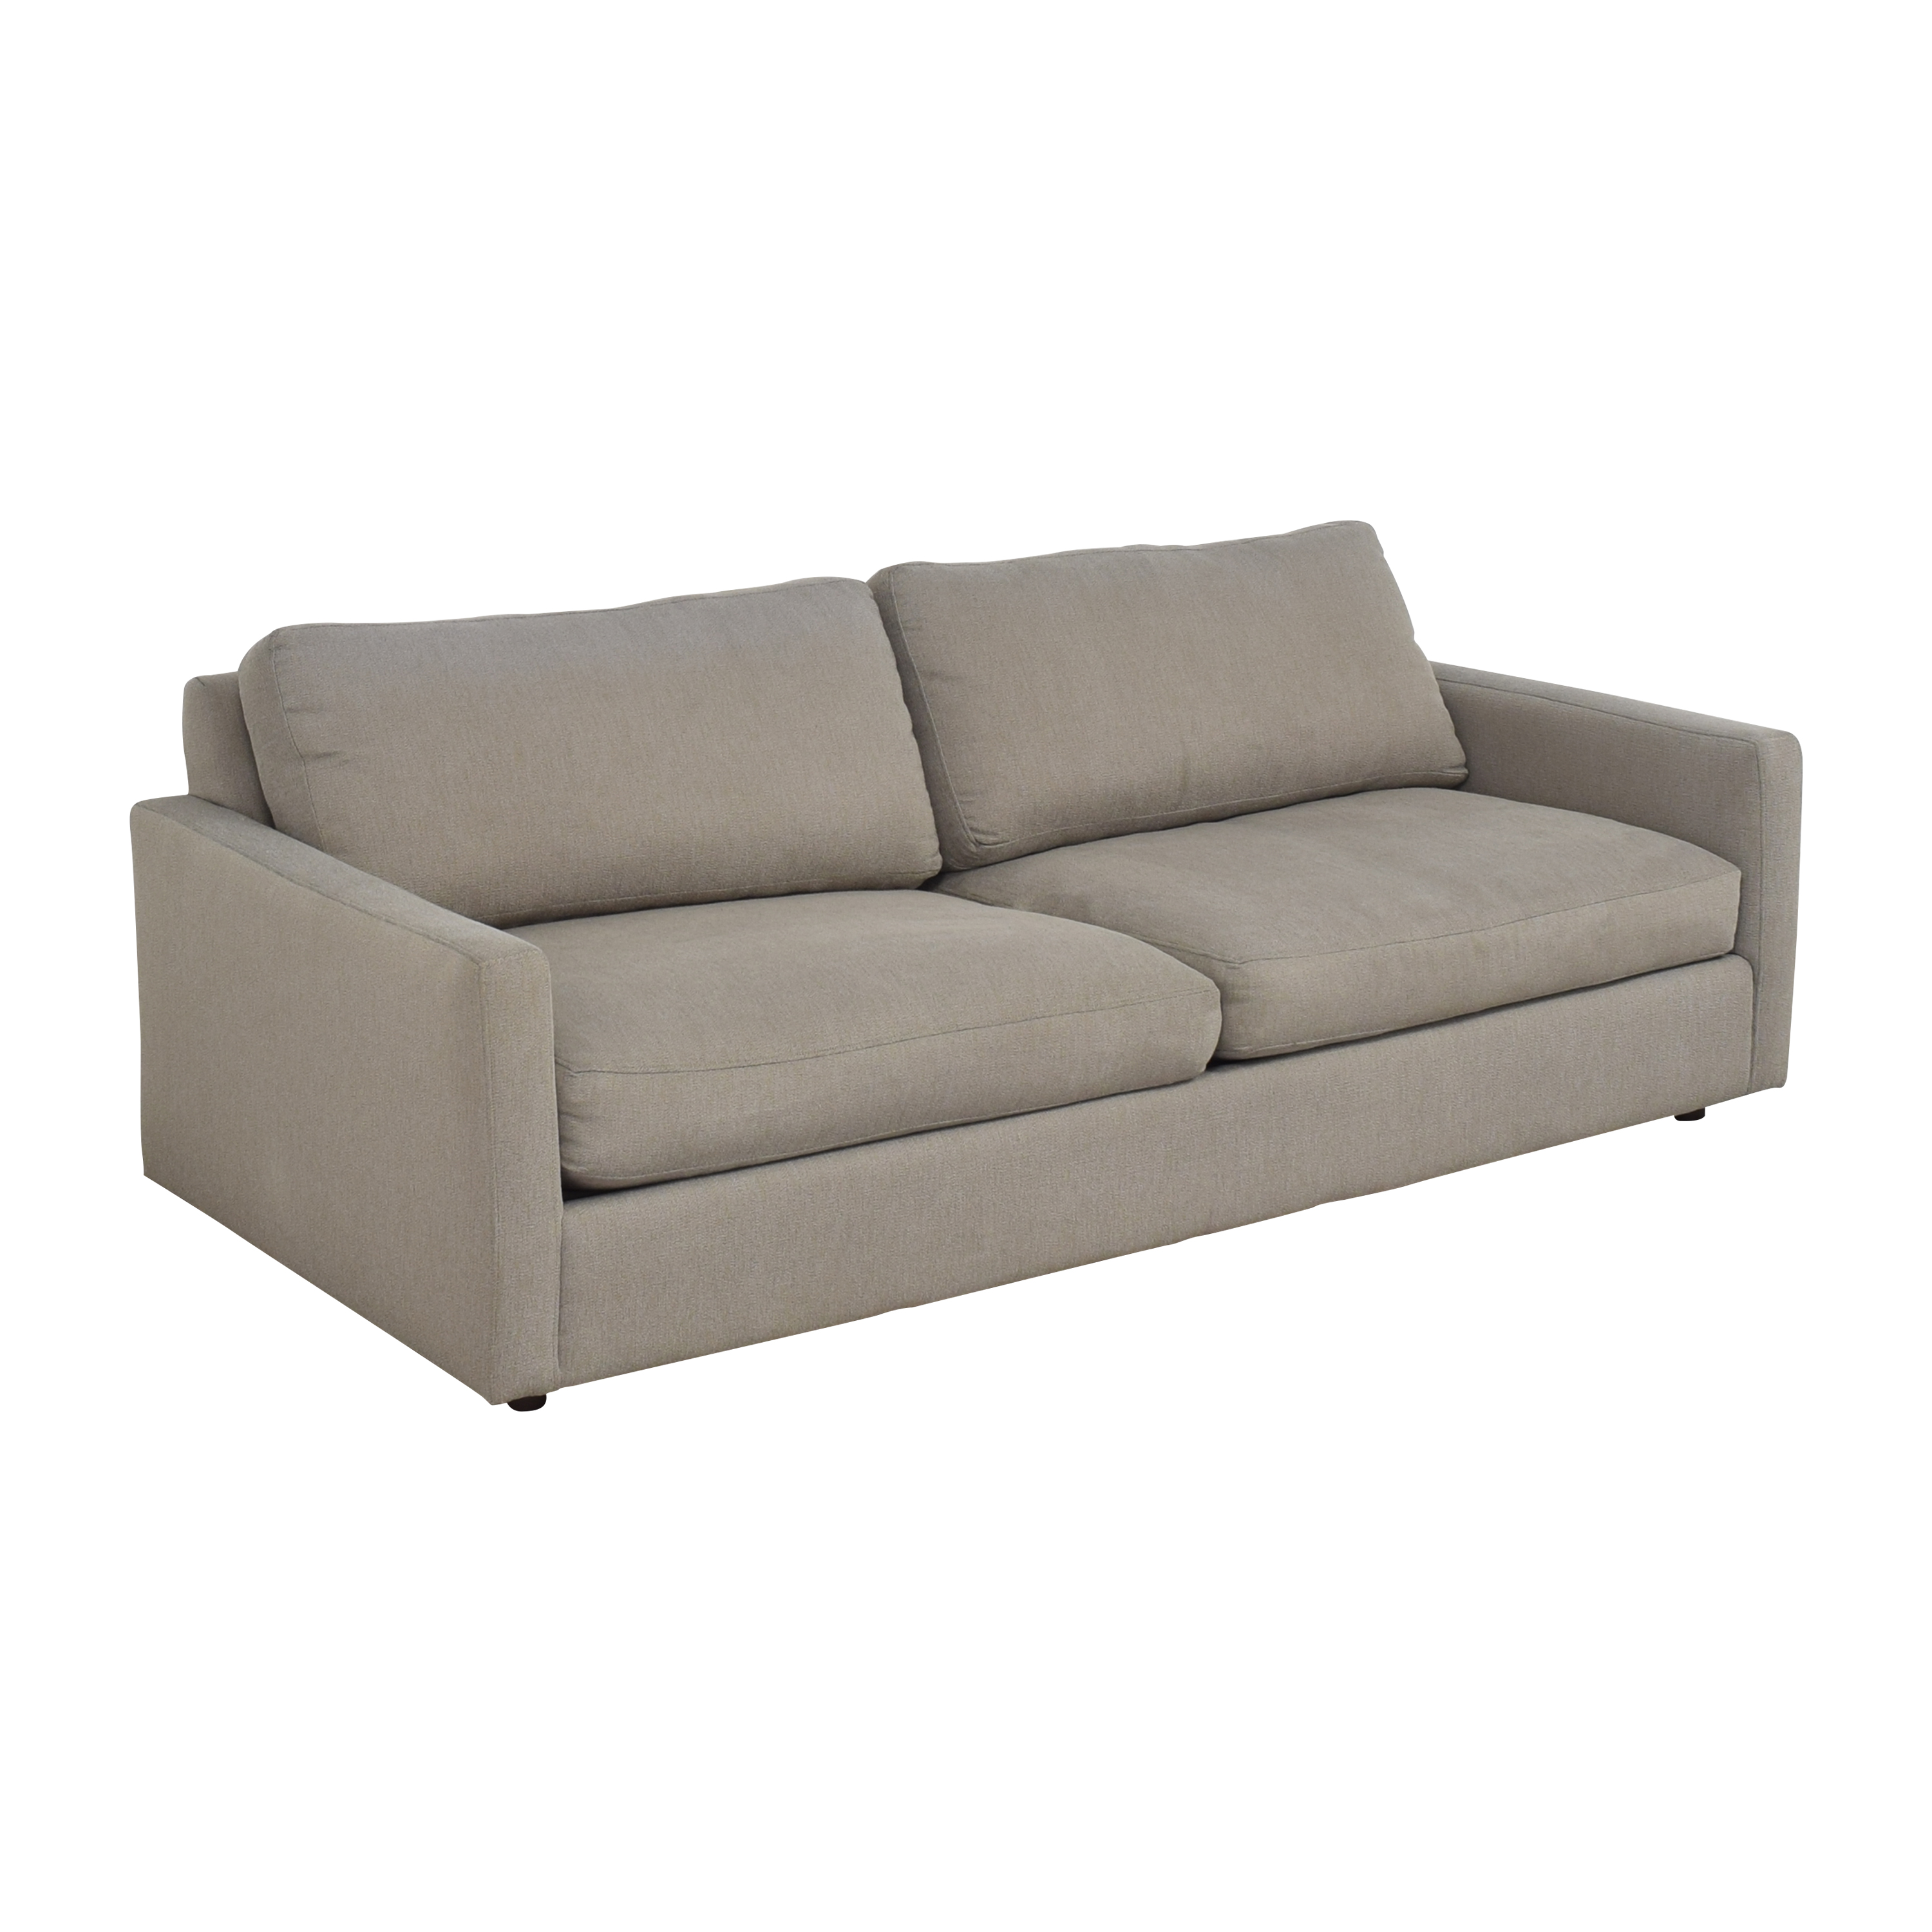 Room & Board Room & Board Linger Two Seat Sofa discount